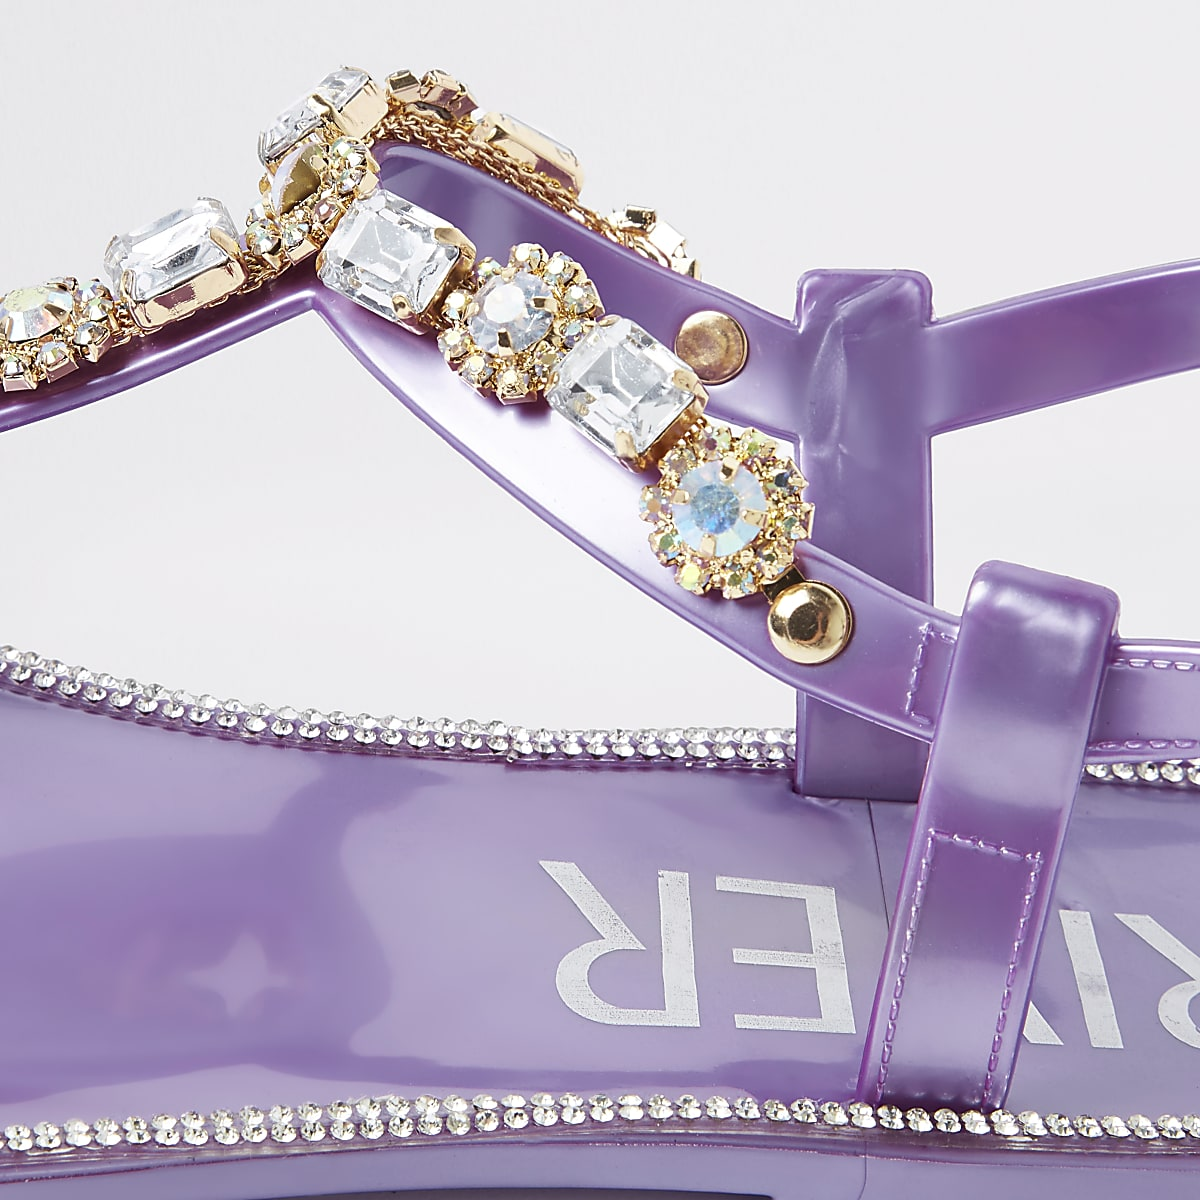 412abe003 Purple gem embellished jelly sandals - Sandals - Shoes   Boots - women